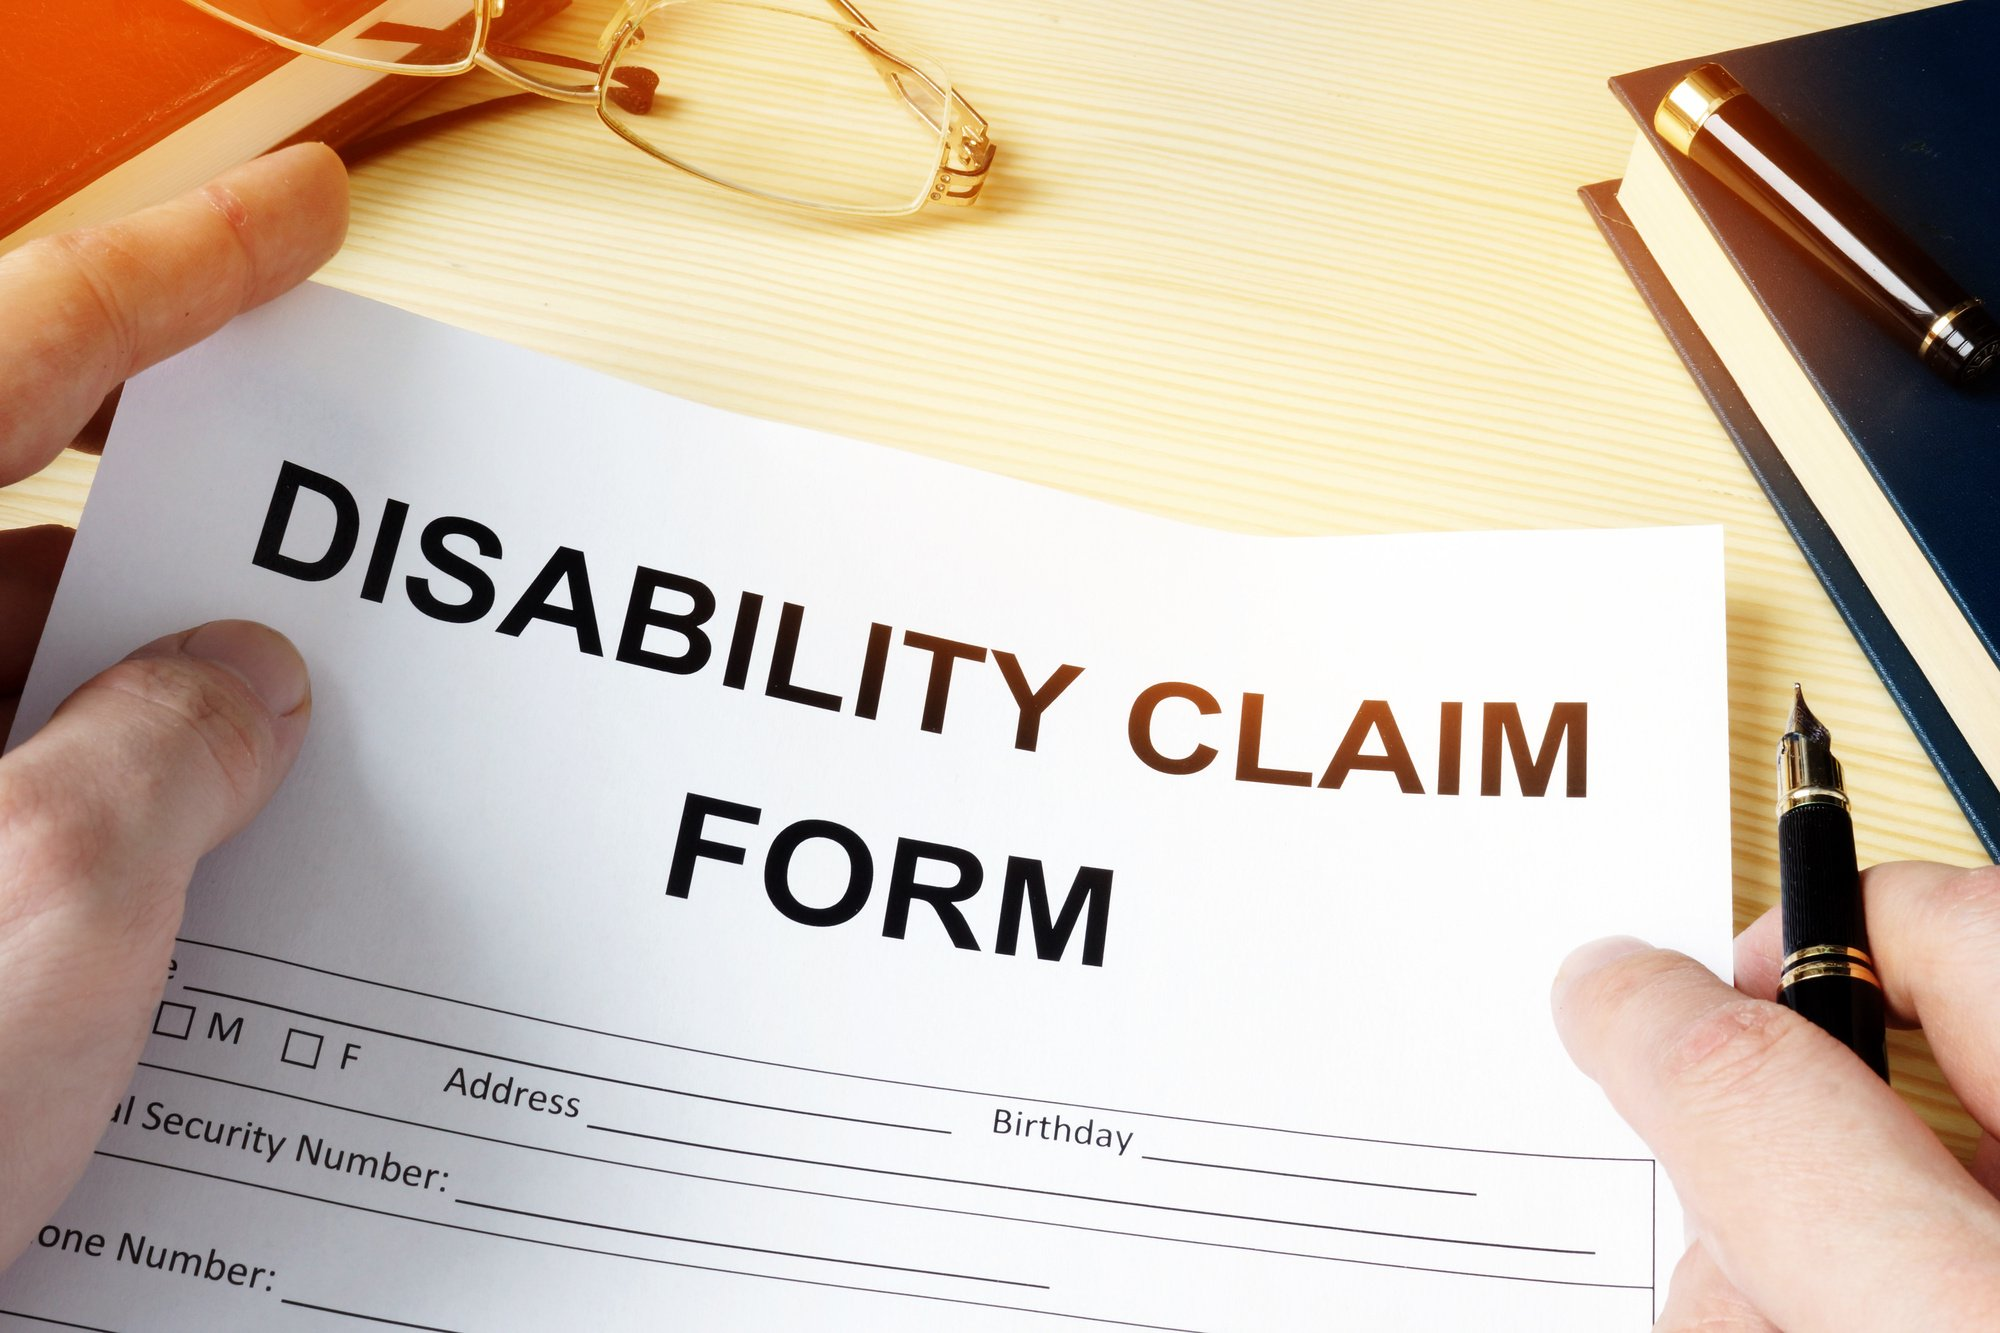 Top 5 Tips On Filing A Disability Claim For Pseudoclaudicationtop Daily Security Pseudoclaudication